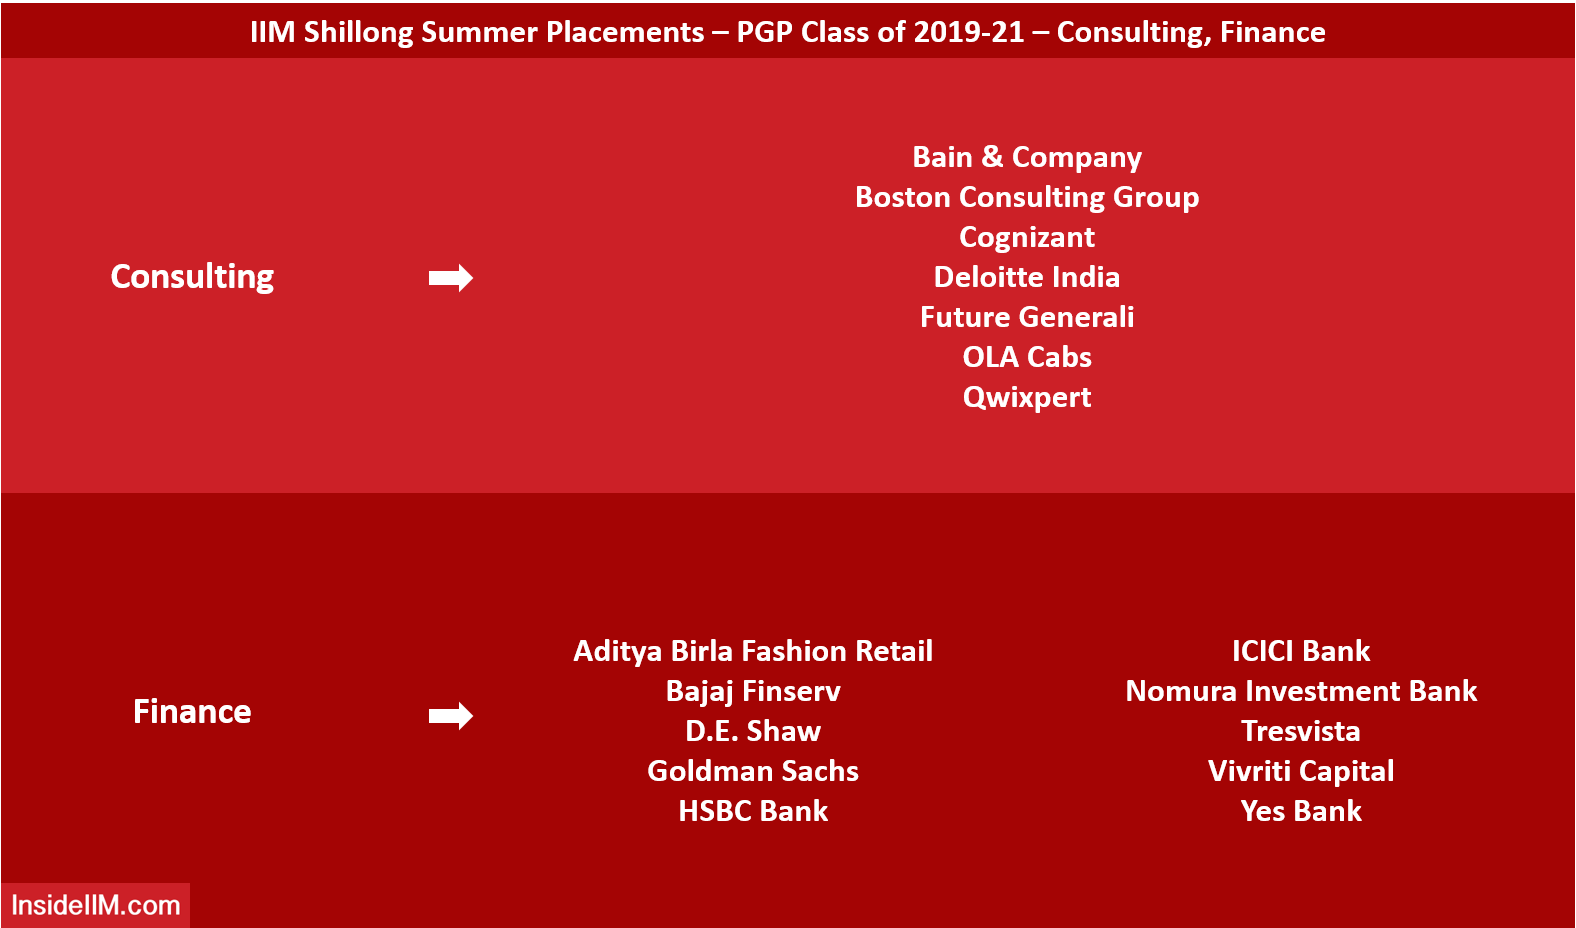 IIM Shillong Summer Placements 2021 - Consulting, Finance Recruiters